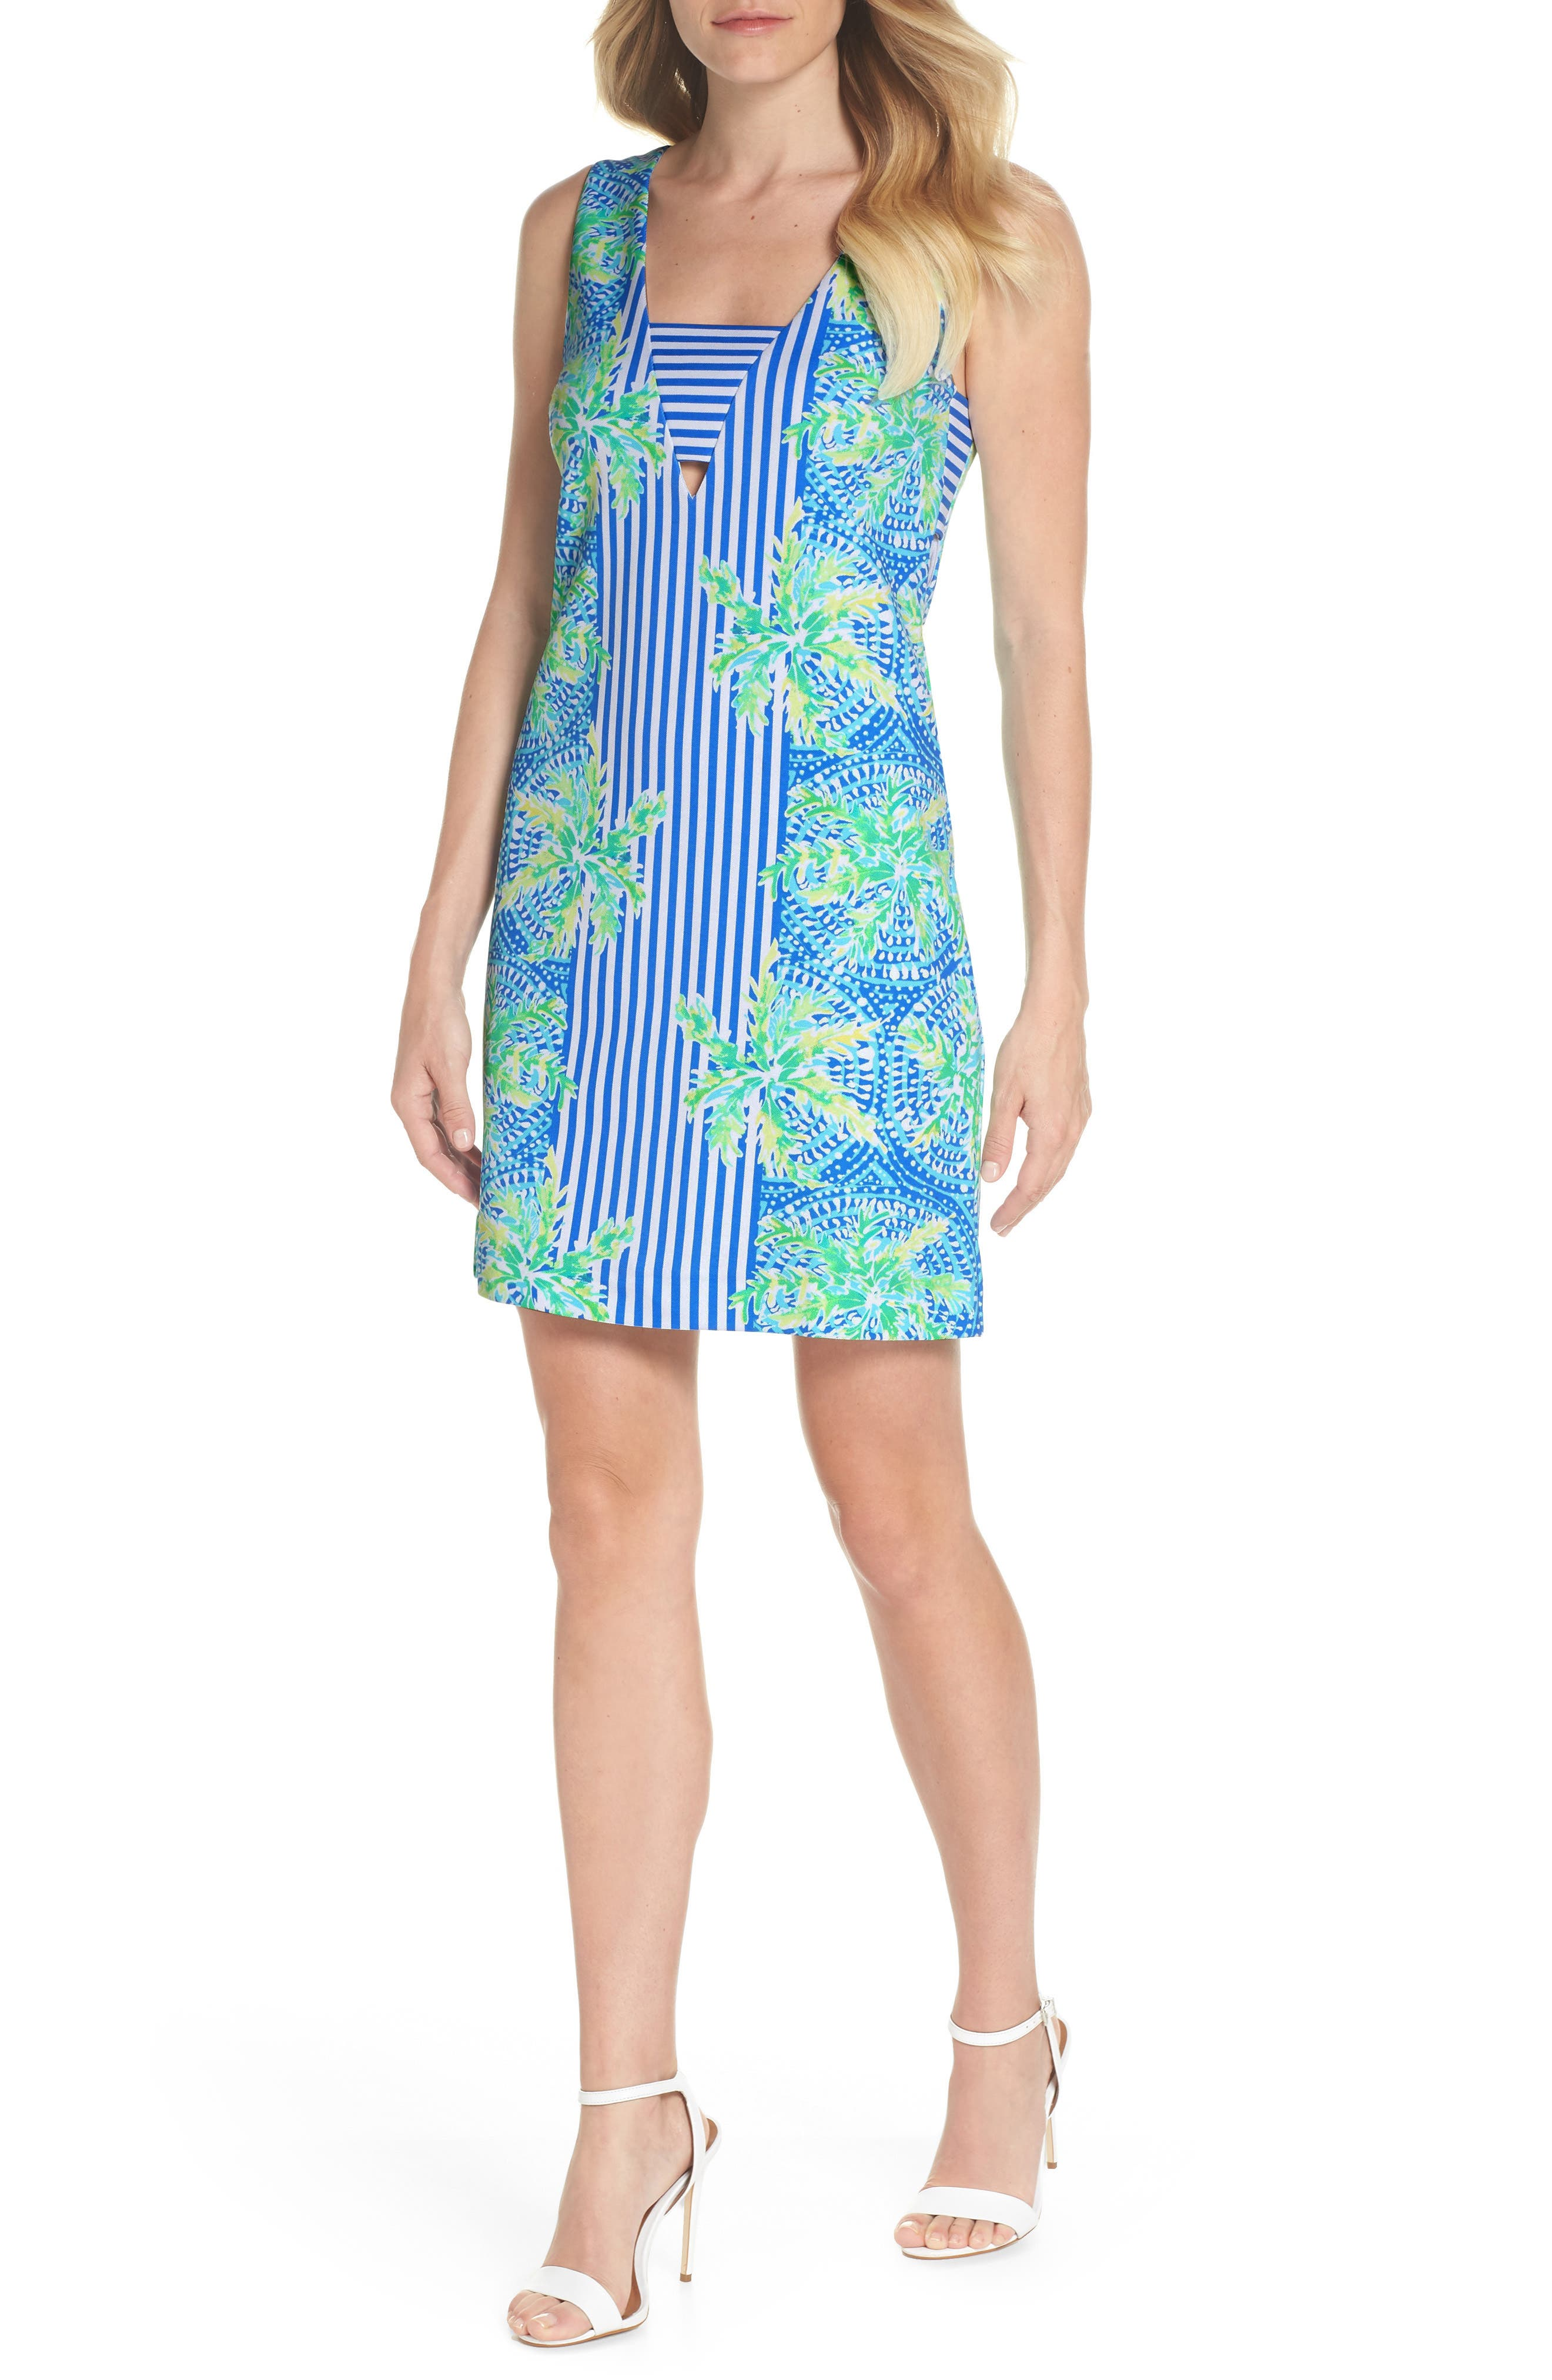 Chiara Stripe & Floral Print Dress,                         Main,                         color, Bennet Blue Tropic Like Its